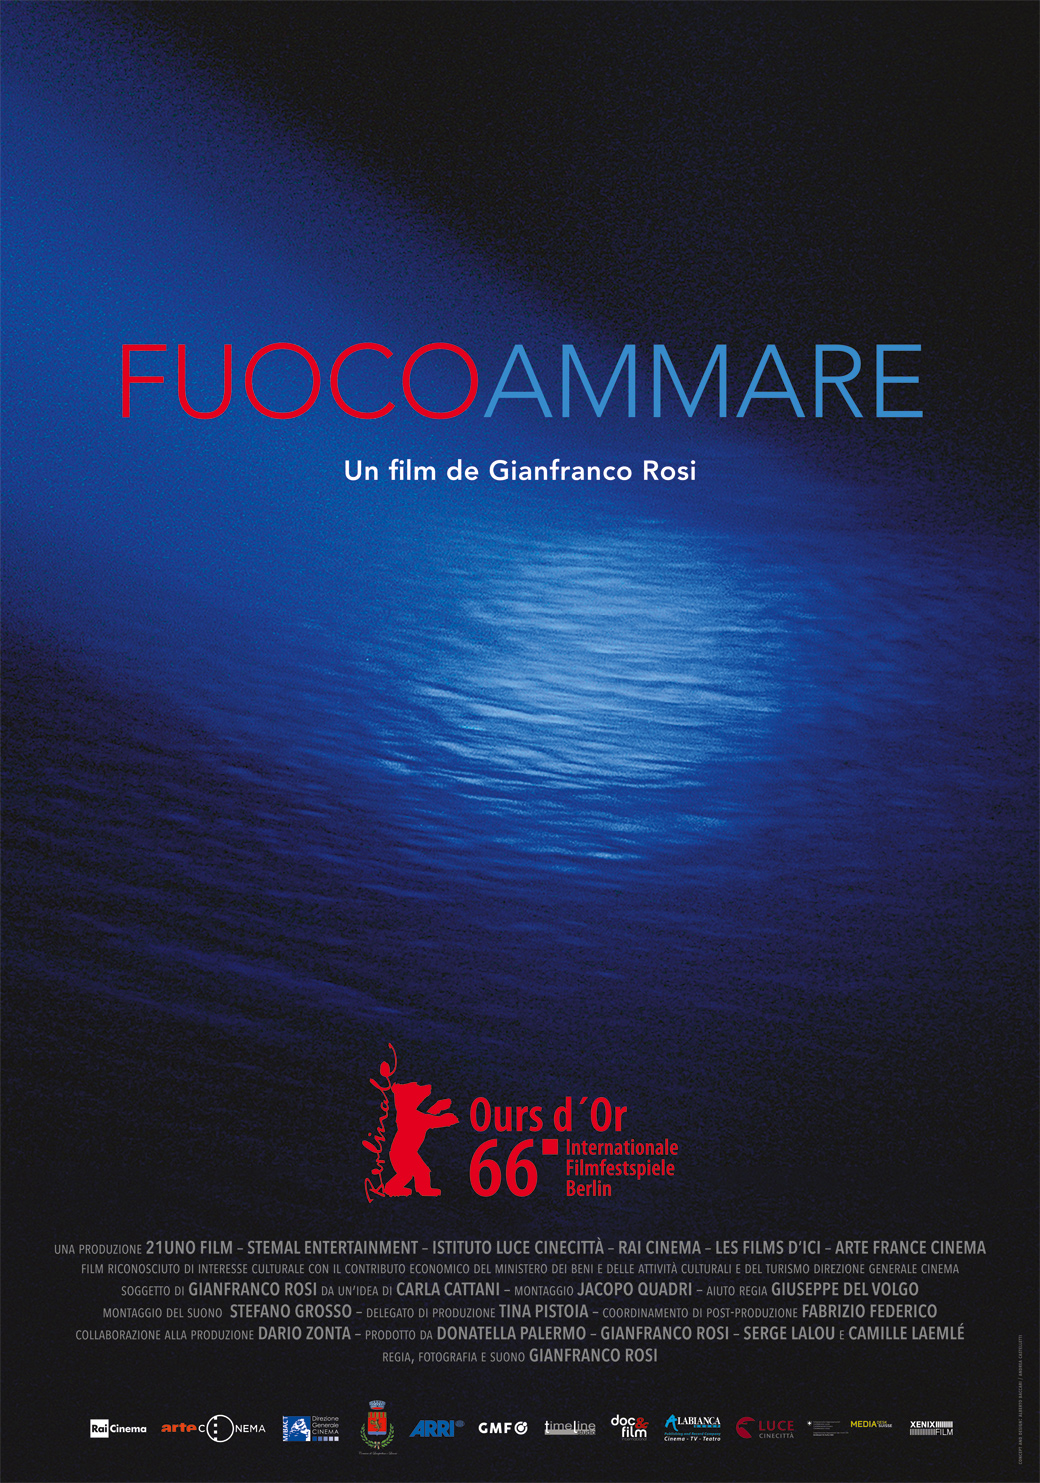 Preview image for LOM object Fuoccoammare, par-delà Lampedusa